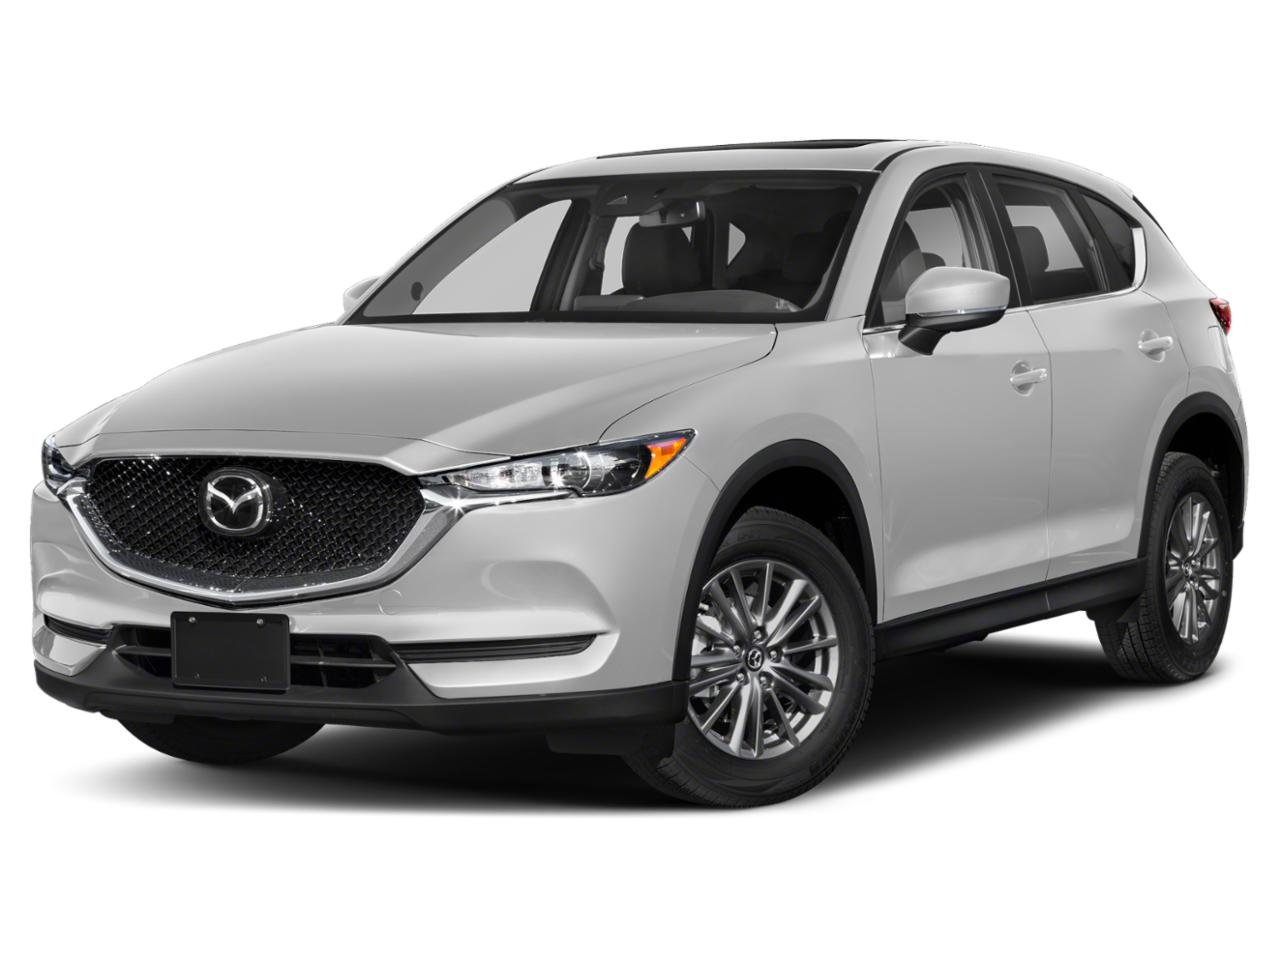 2020 Mazda CX-5 Vehicle Photo in Plainfield, IL 60586